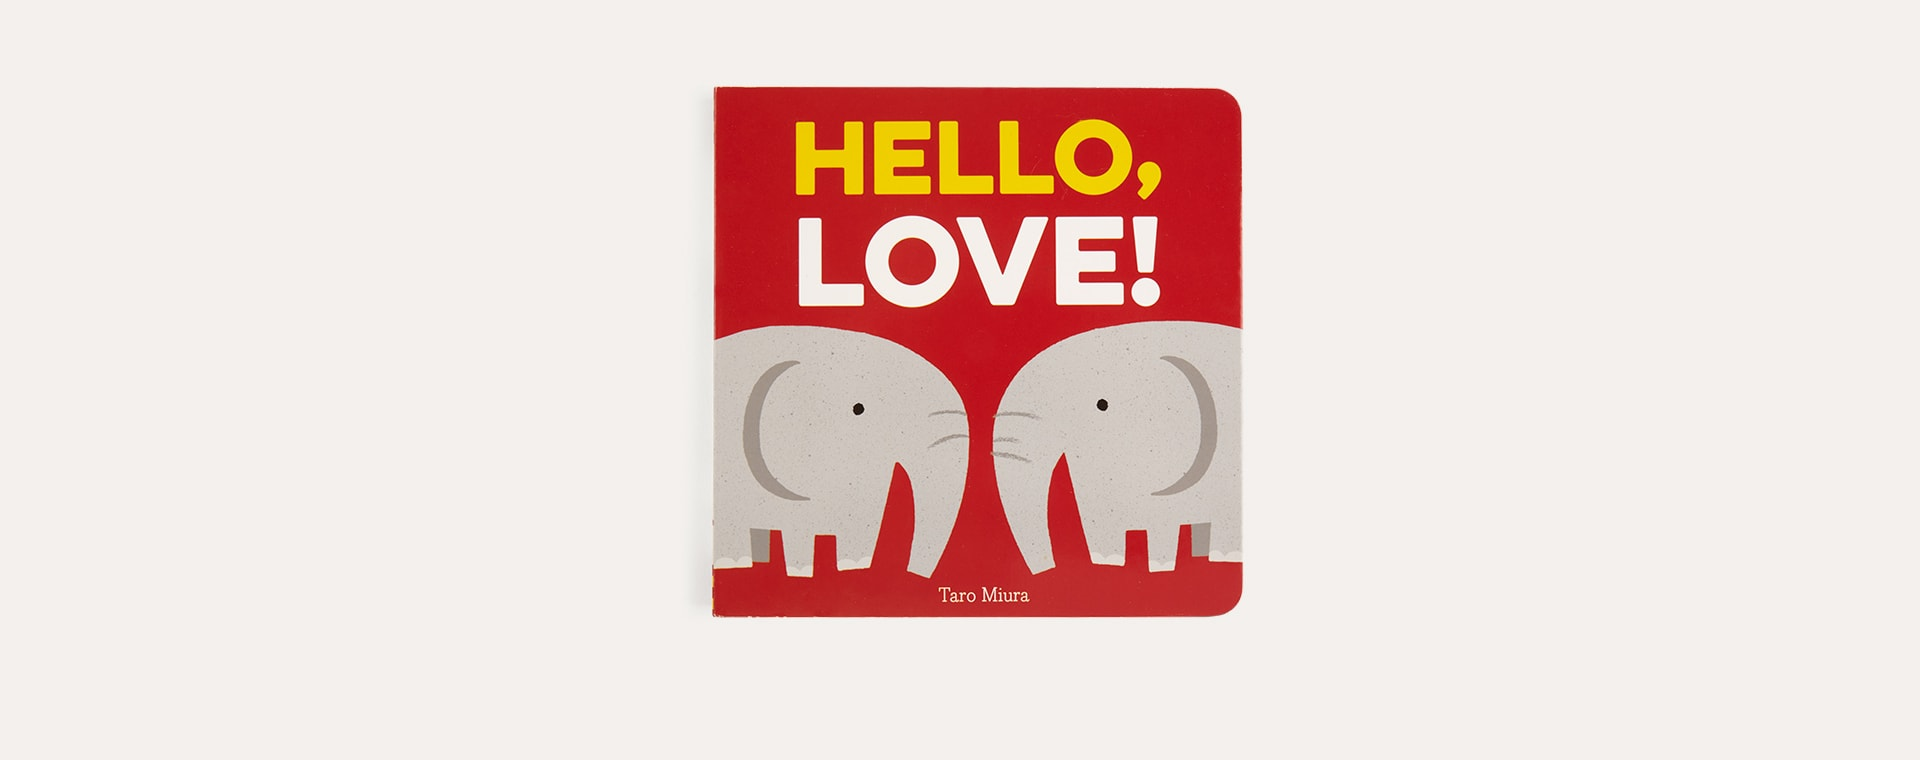 Red Abrams & Chronicle Books Hello, Love!